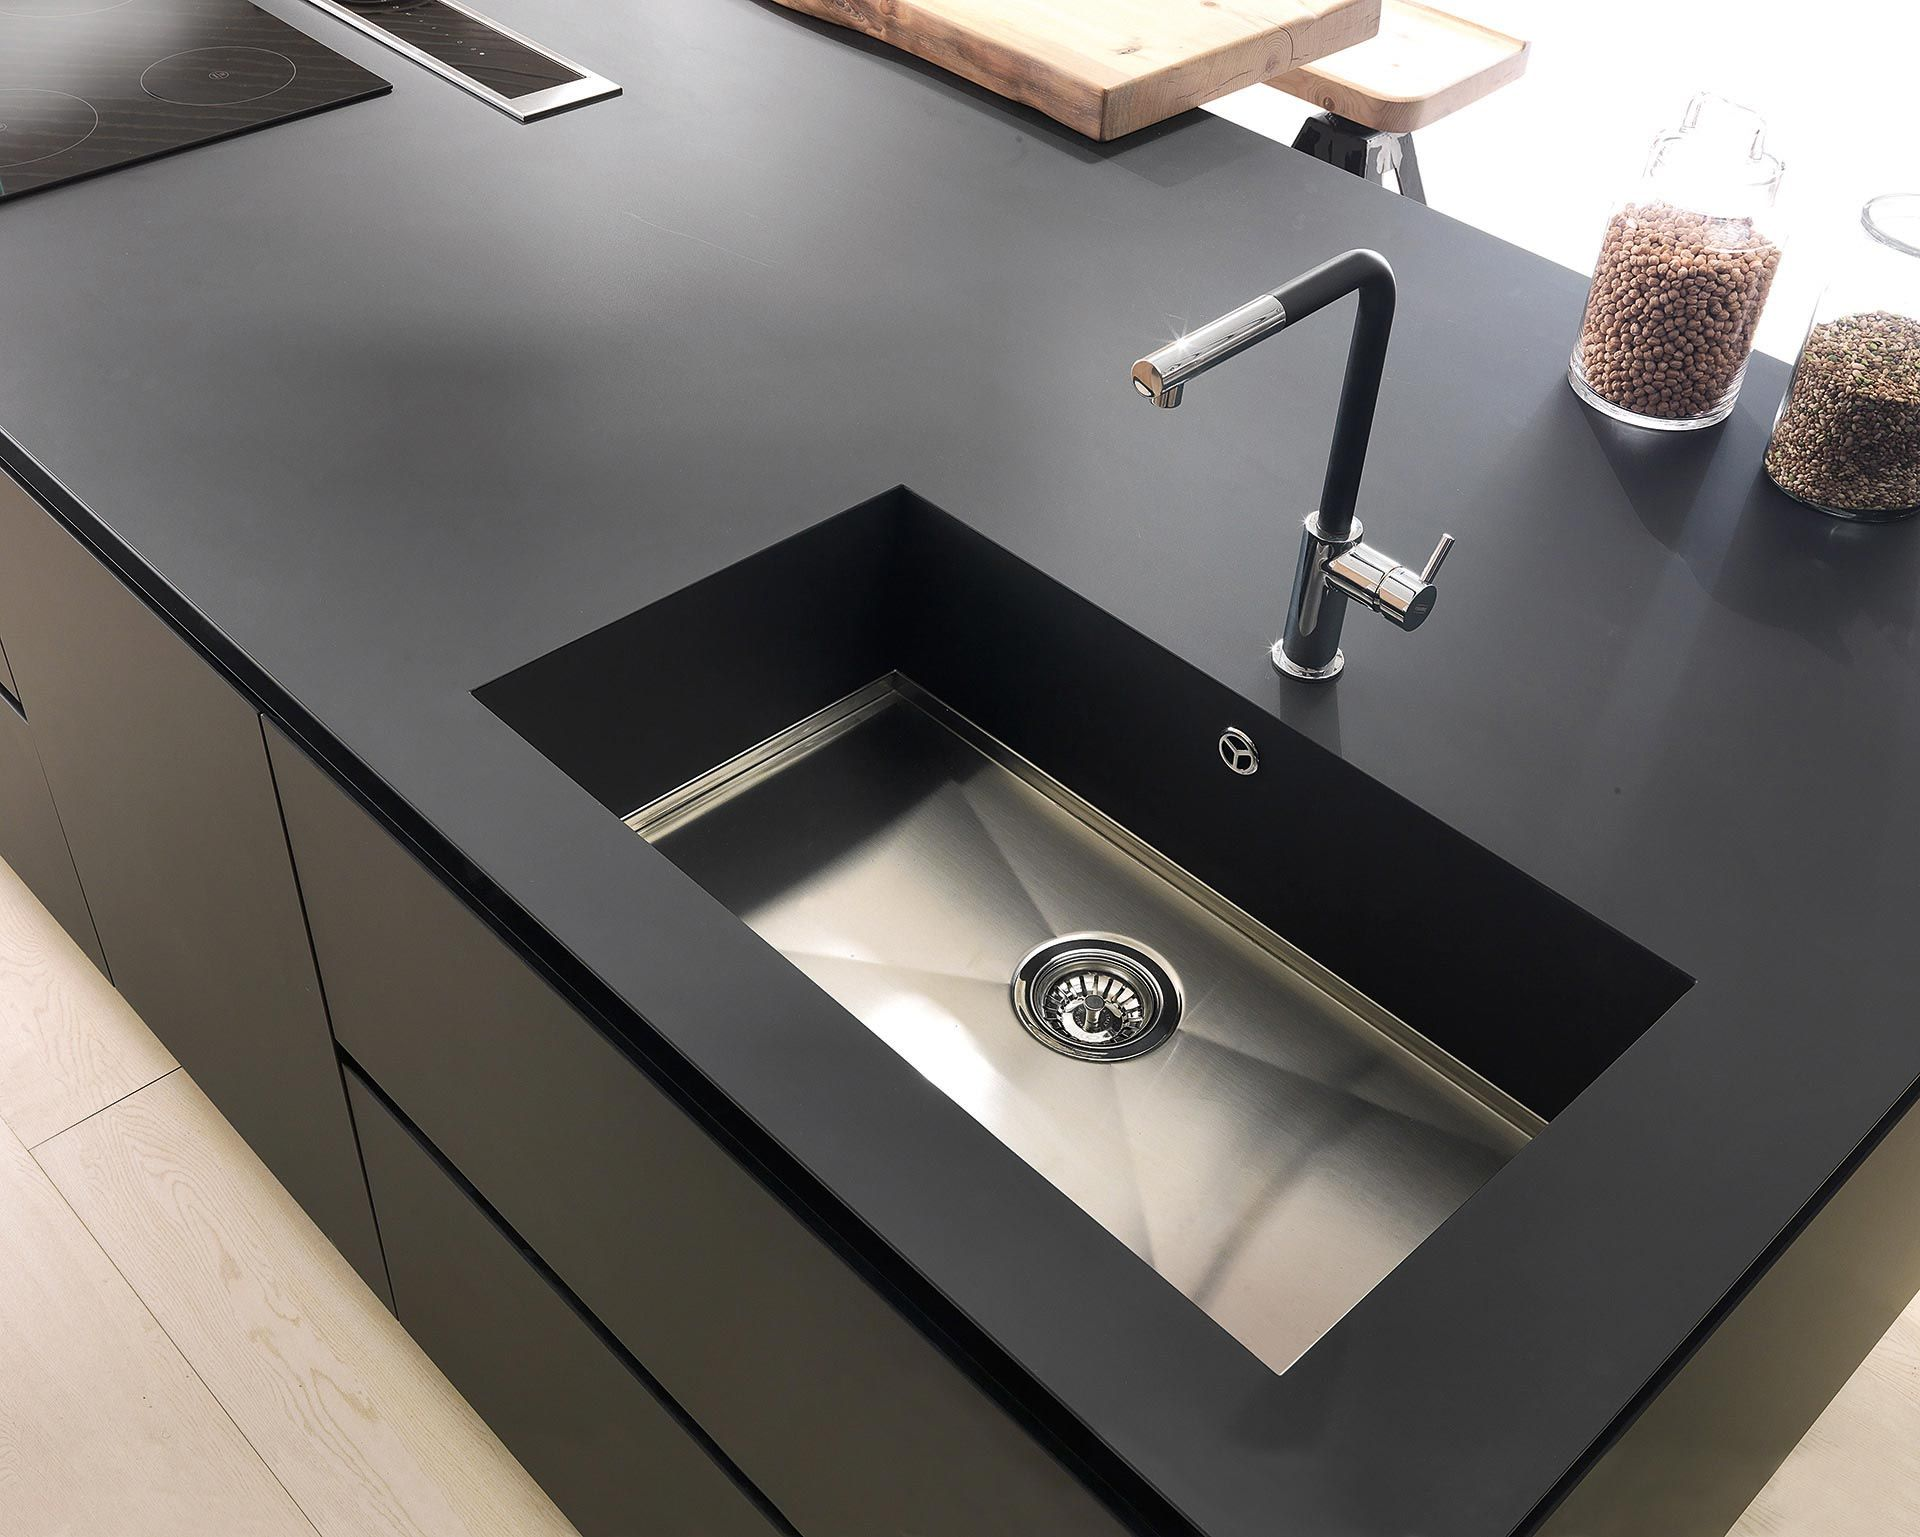 Black sink with stainless steel tray | COCINAS MODERNISIMAS ...